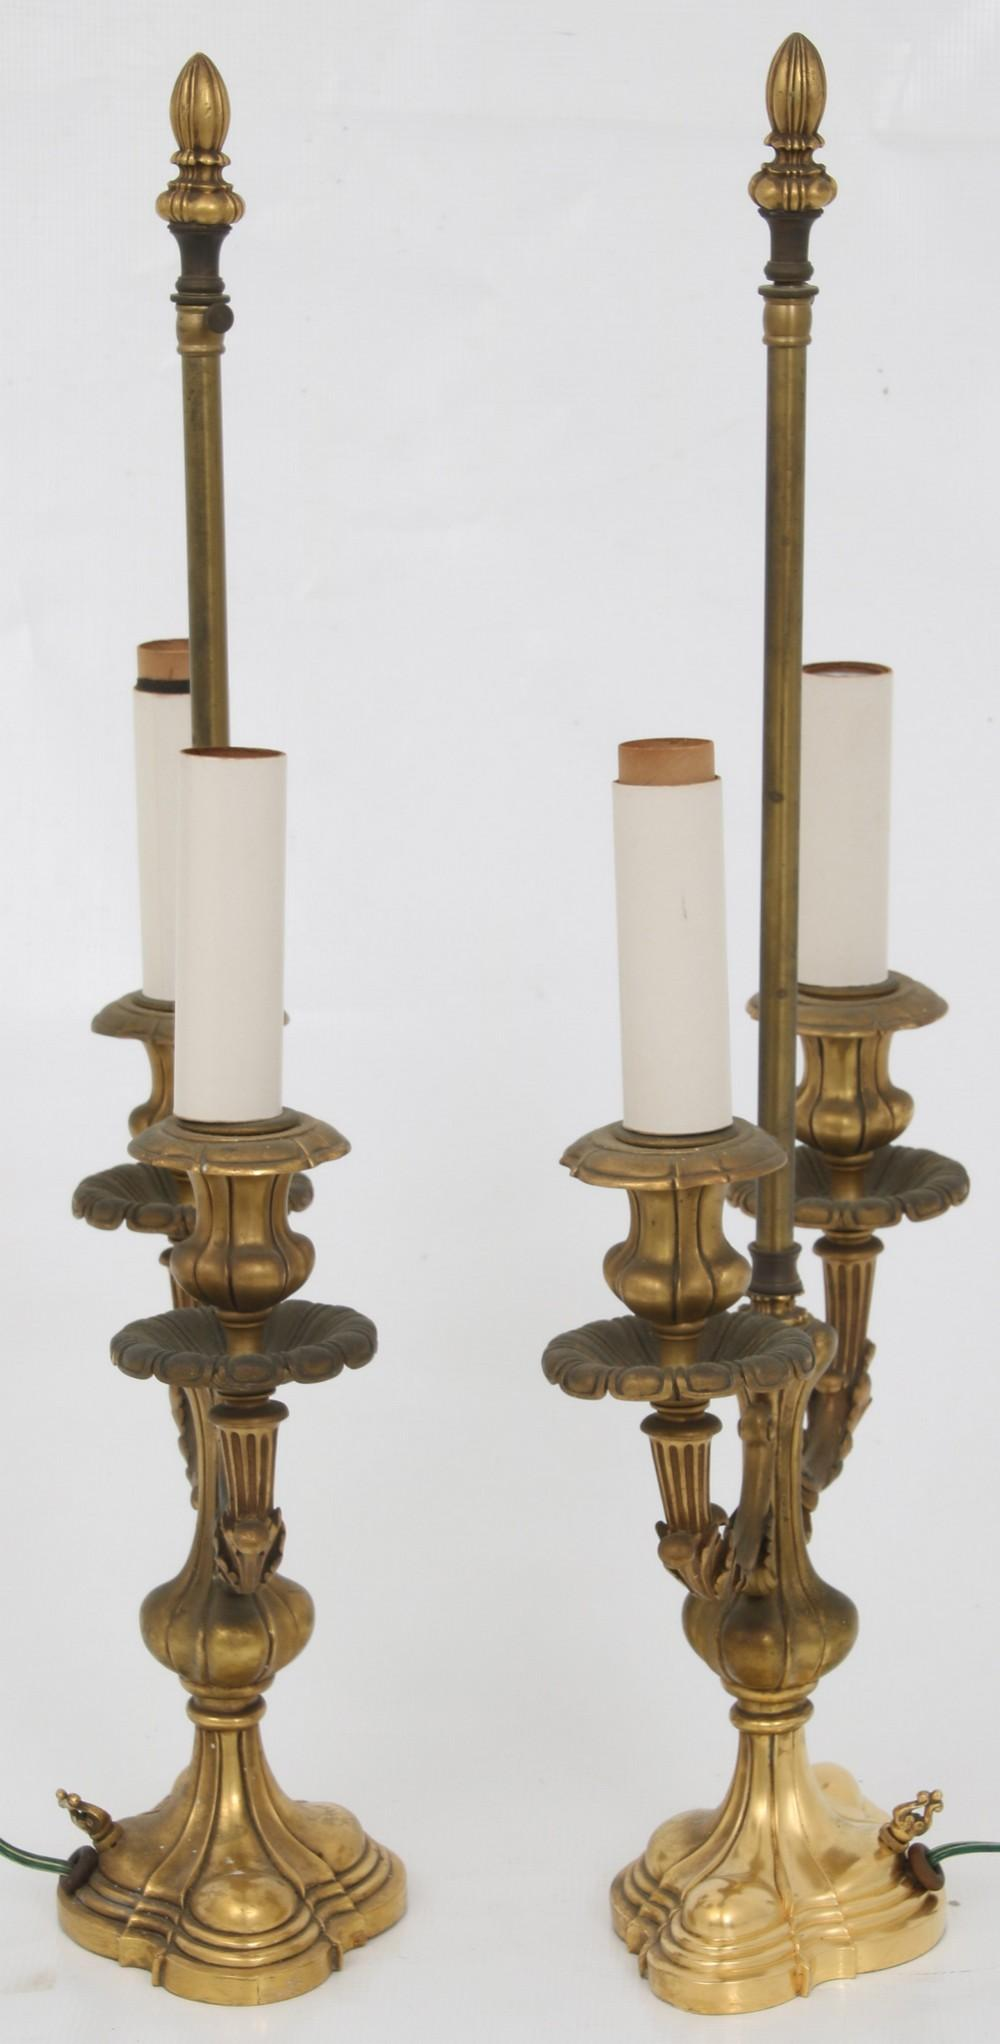 Pair of Attr. E.F. Caldwell Gilt Bronze Lamps